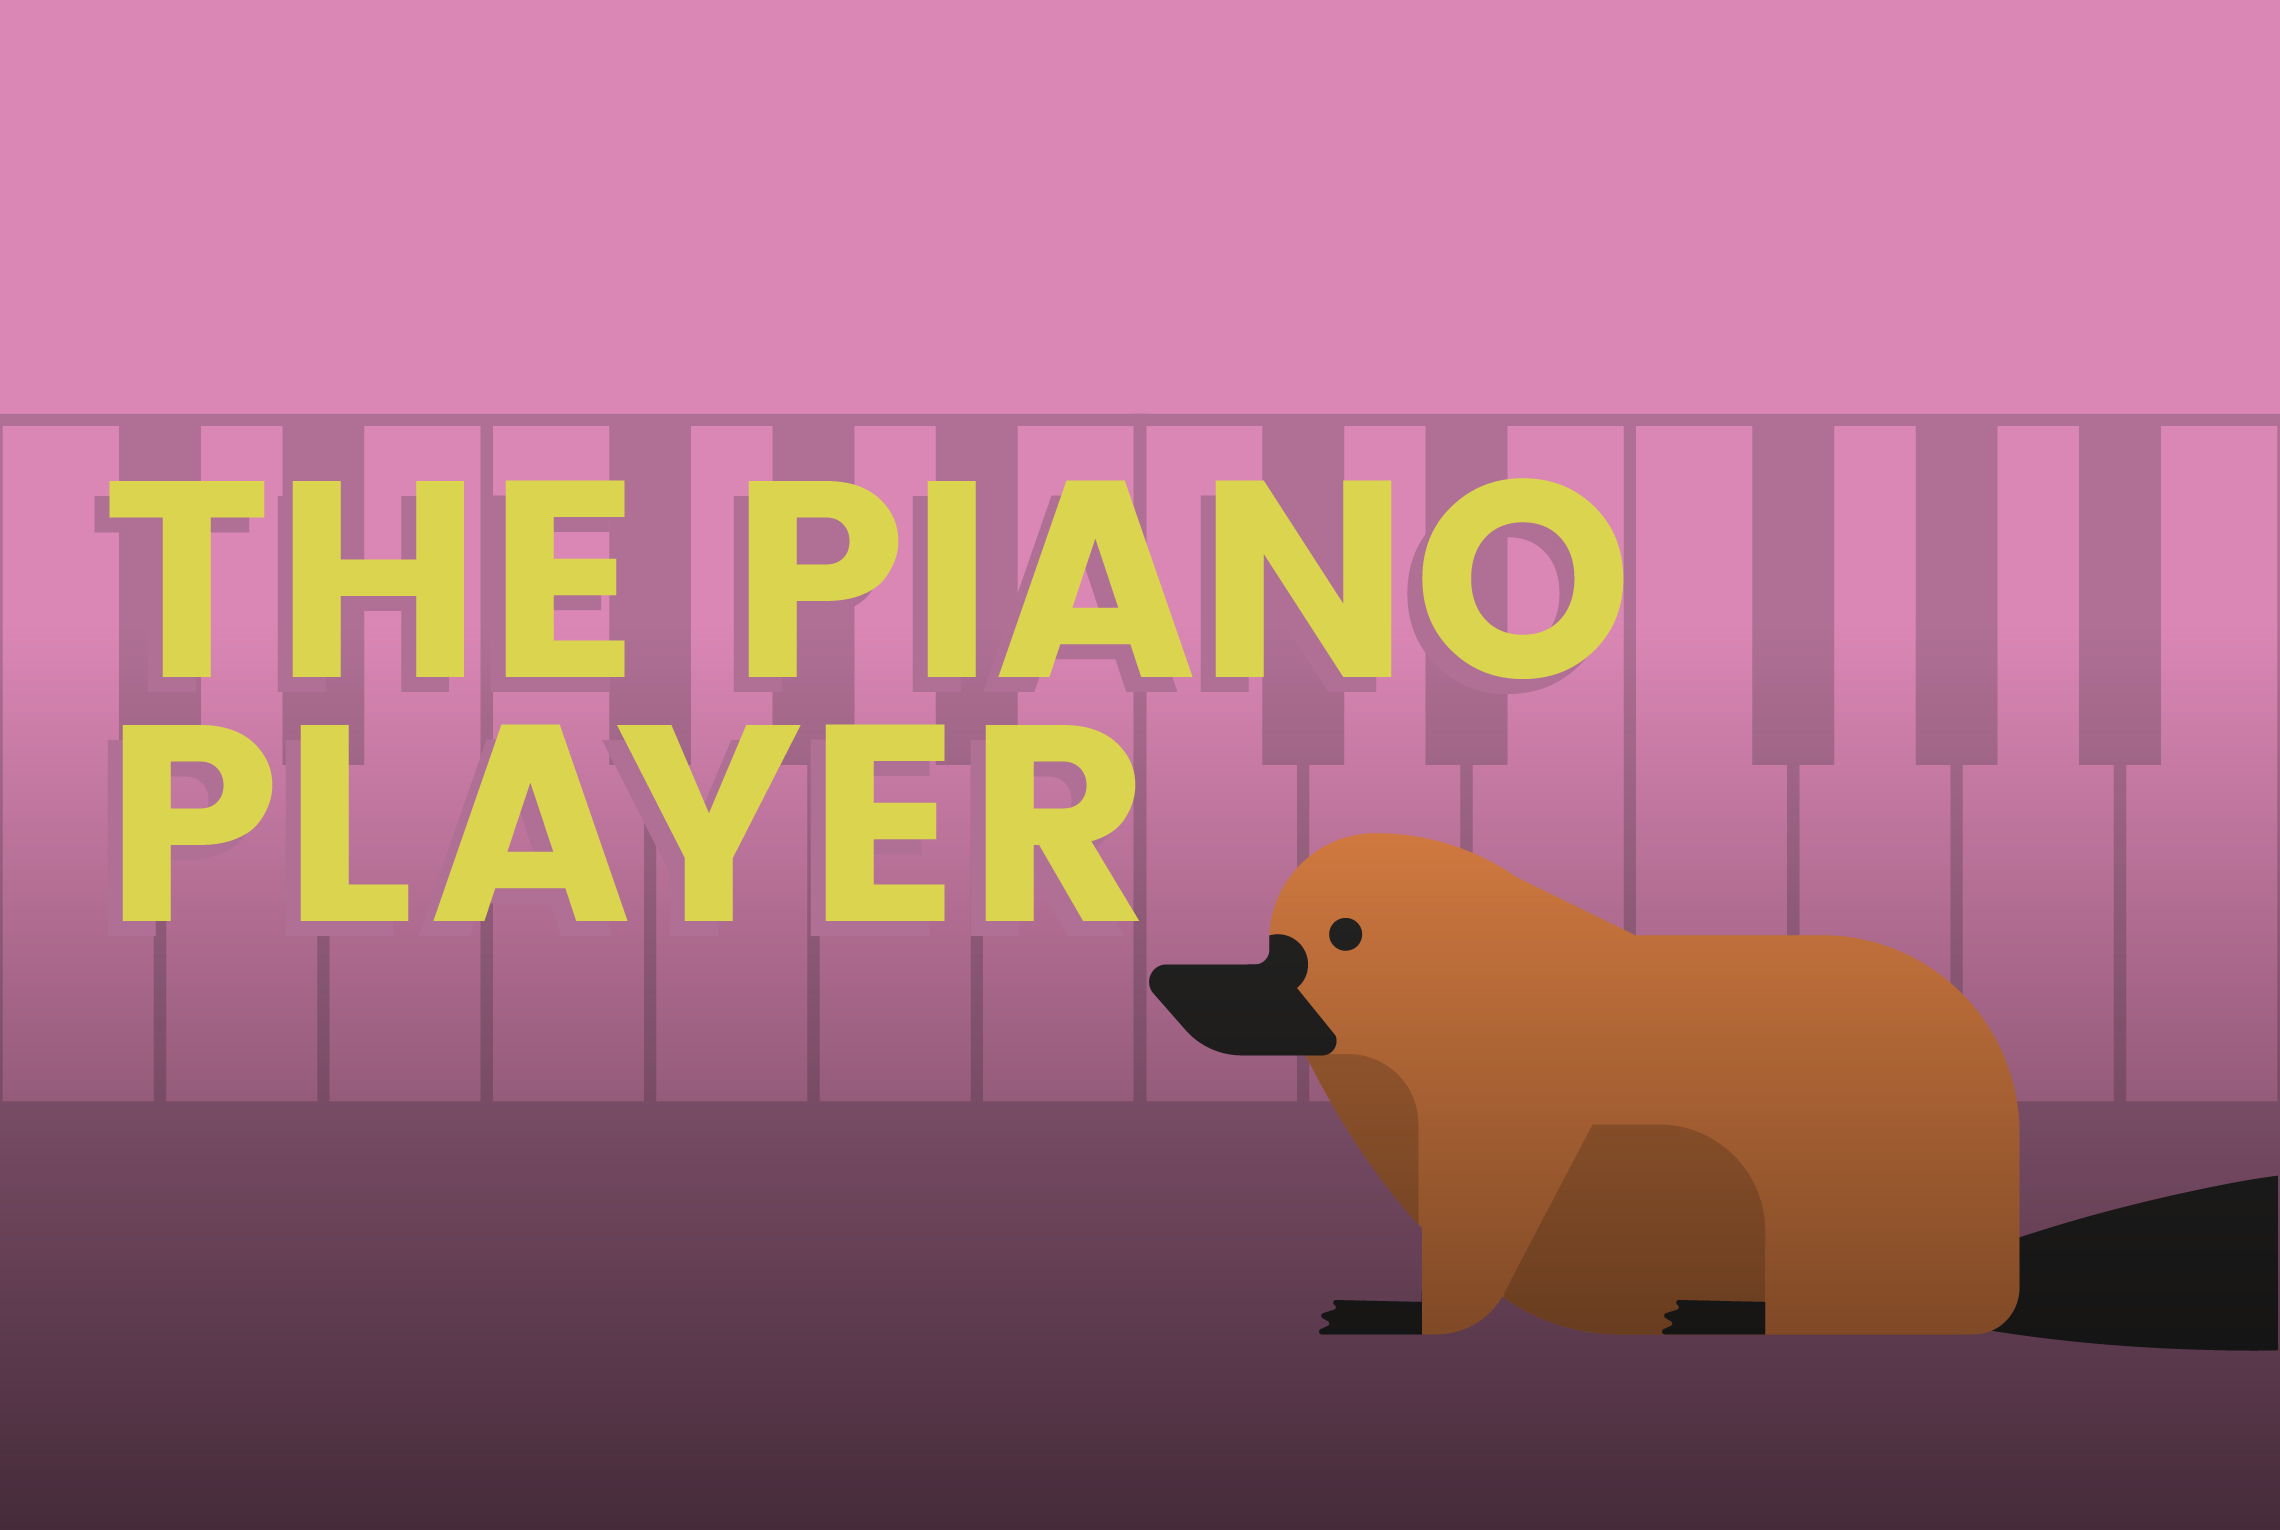 The Piano Player - a game on Funbrain